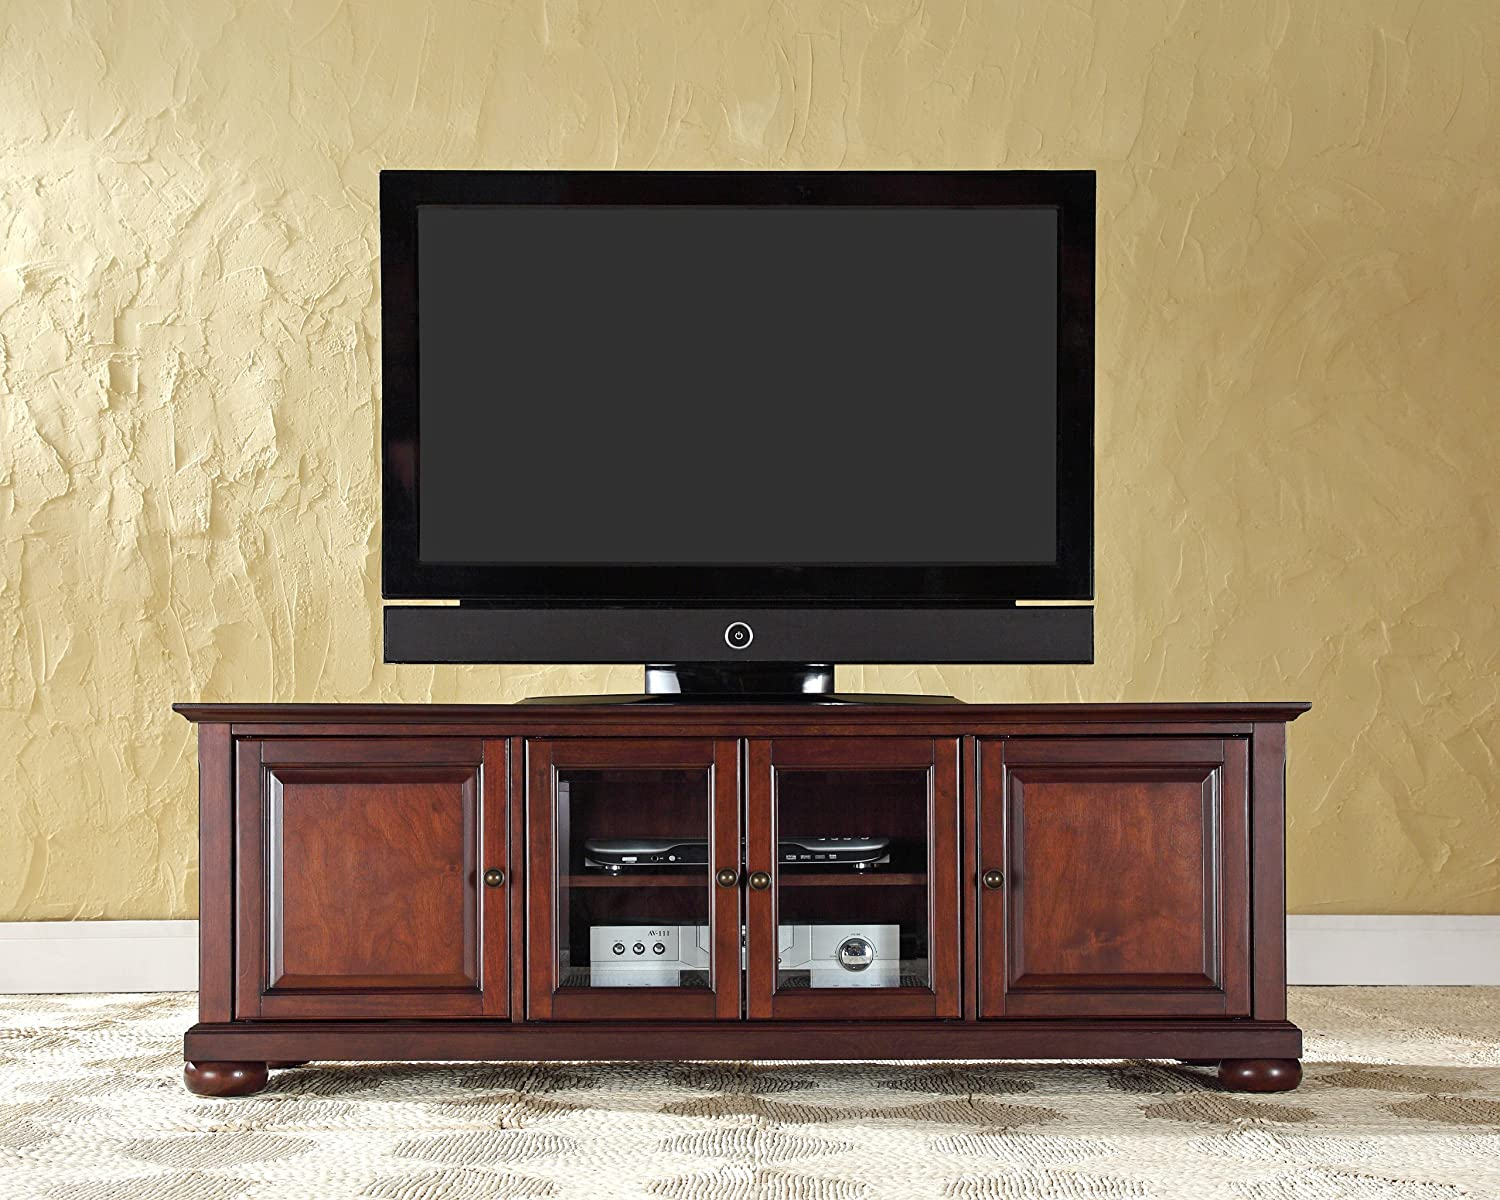 Marvelous Flatscreen TV Stands Crosley Furniture Alexandria 60 Inch Low Profile With  TV View